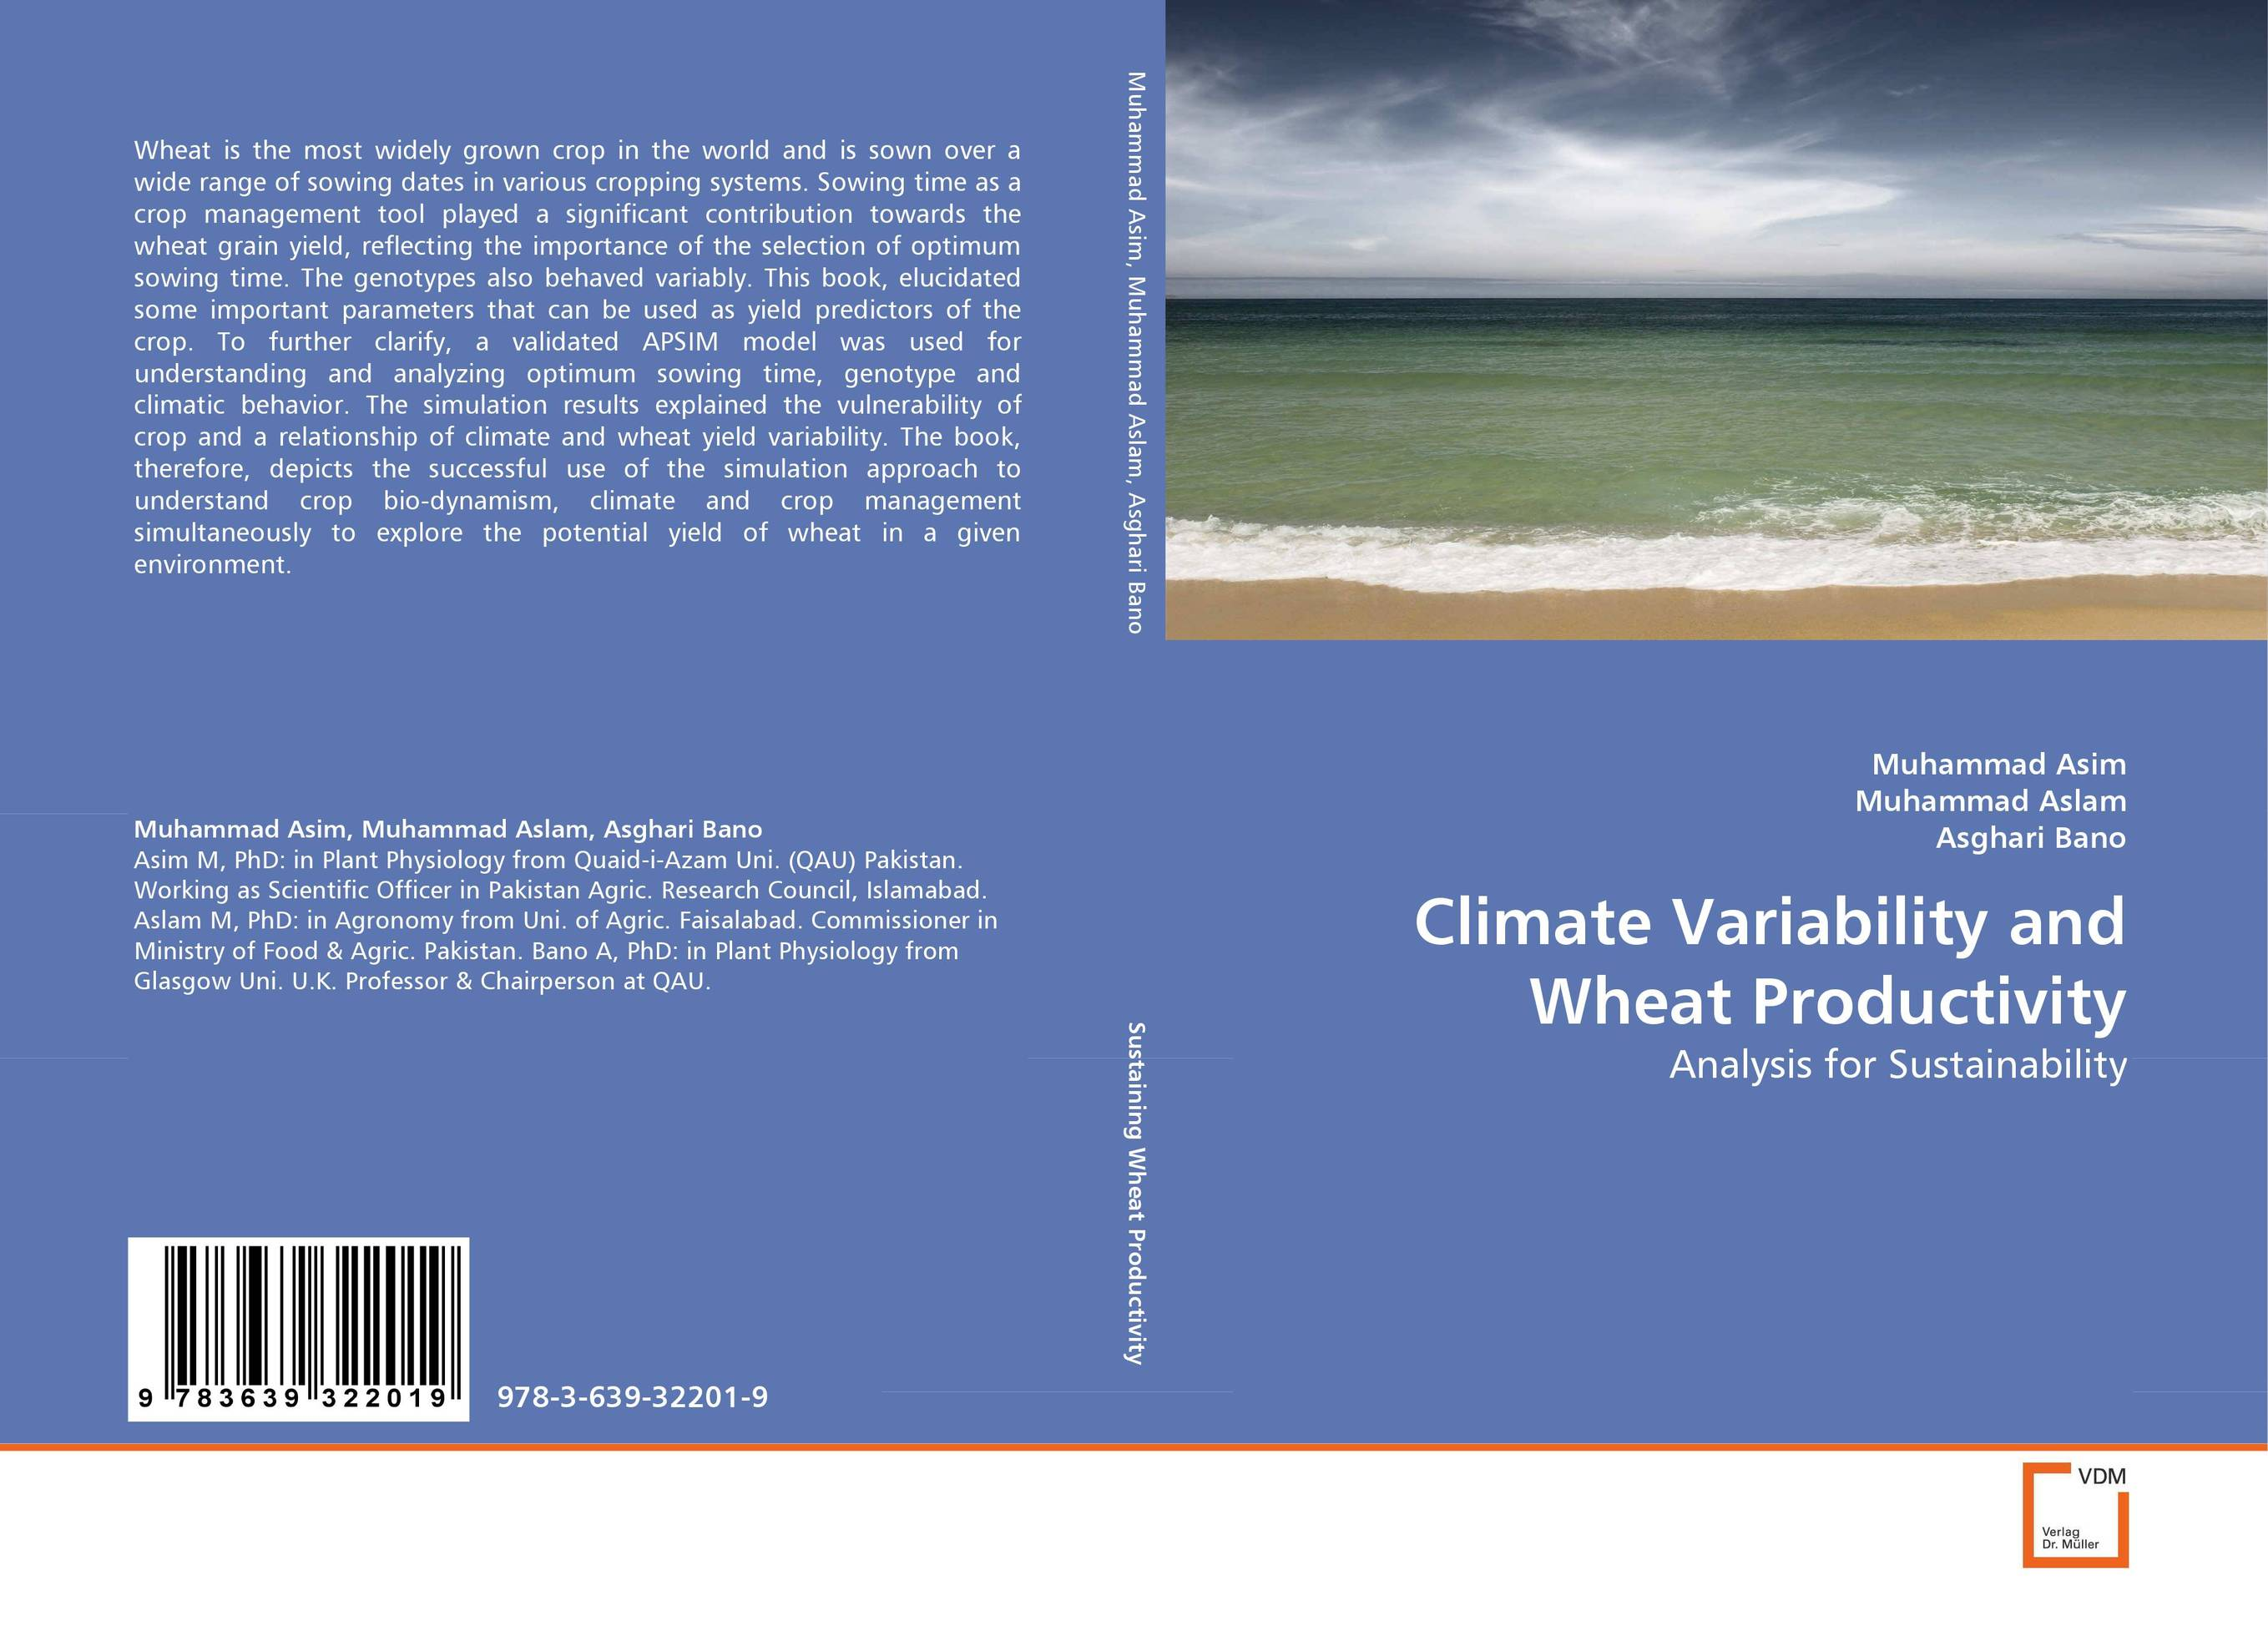 Climate Variability and Wheat Productivity